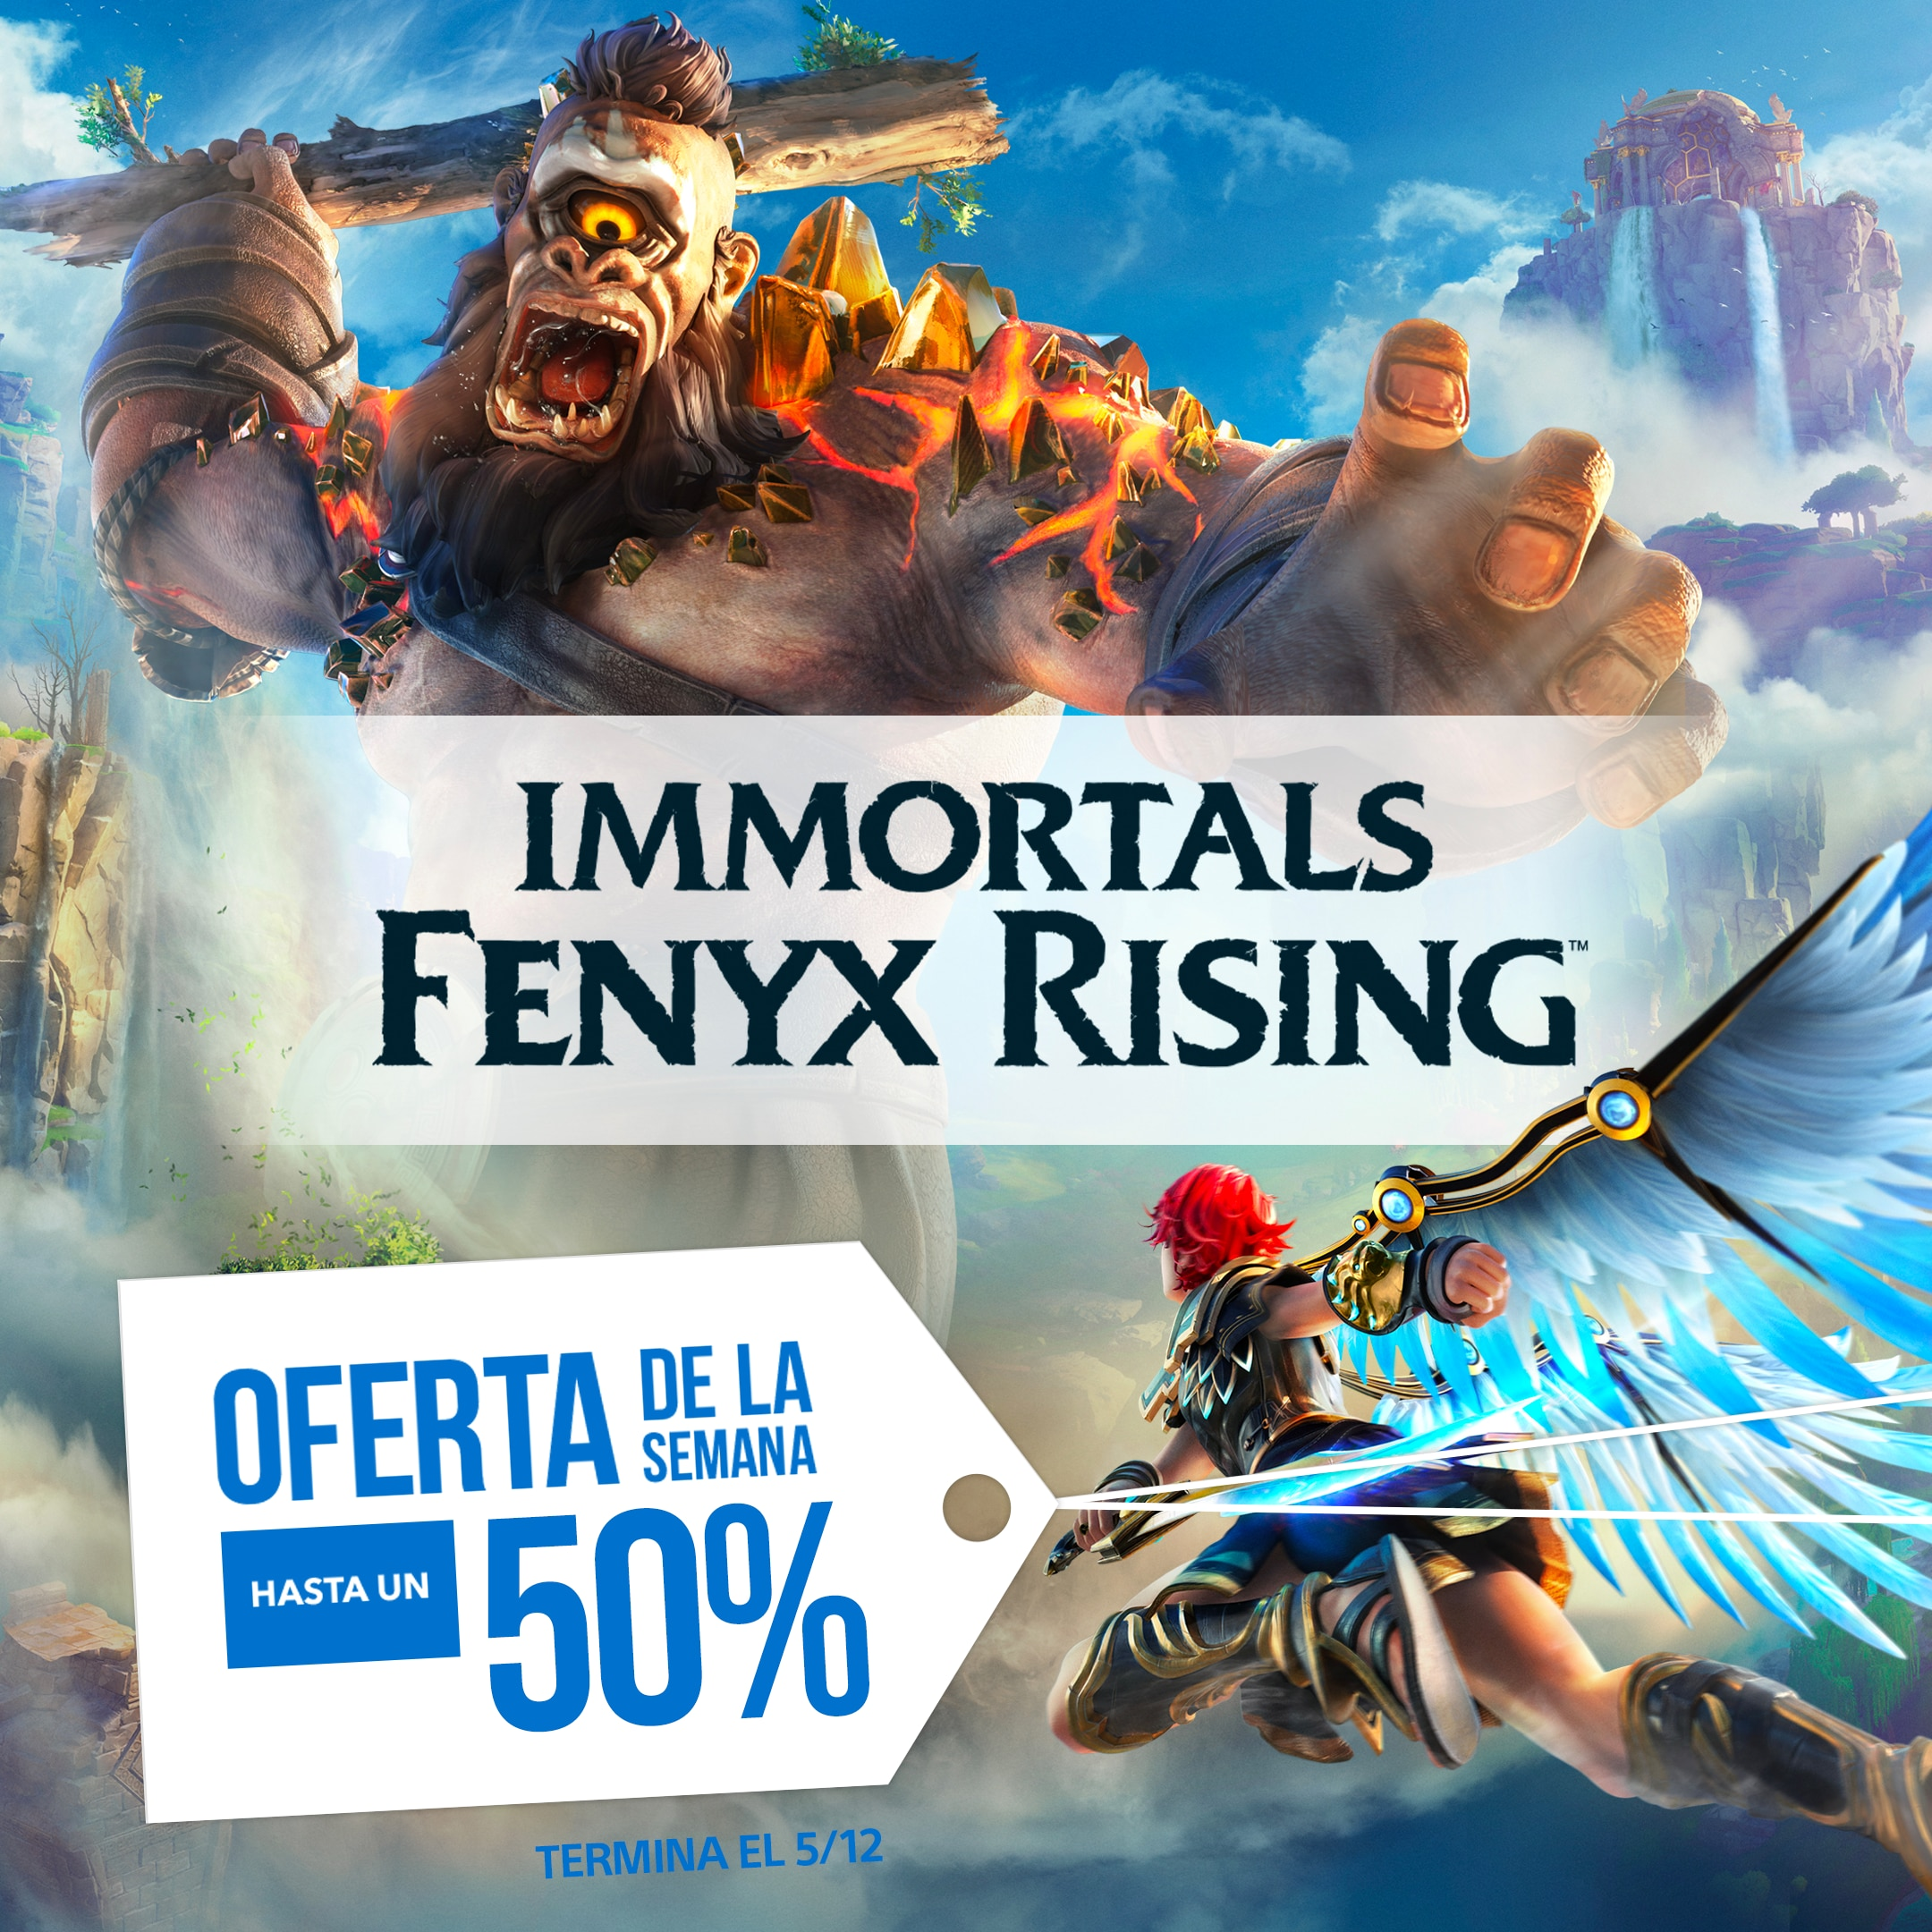 [PROMO] Deal Of The Week - Immortals Fenyx Rising